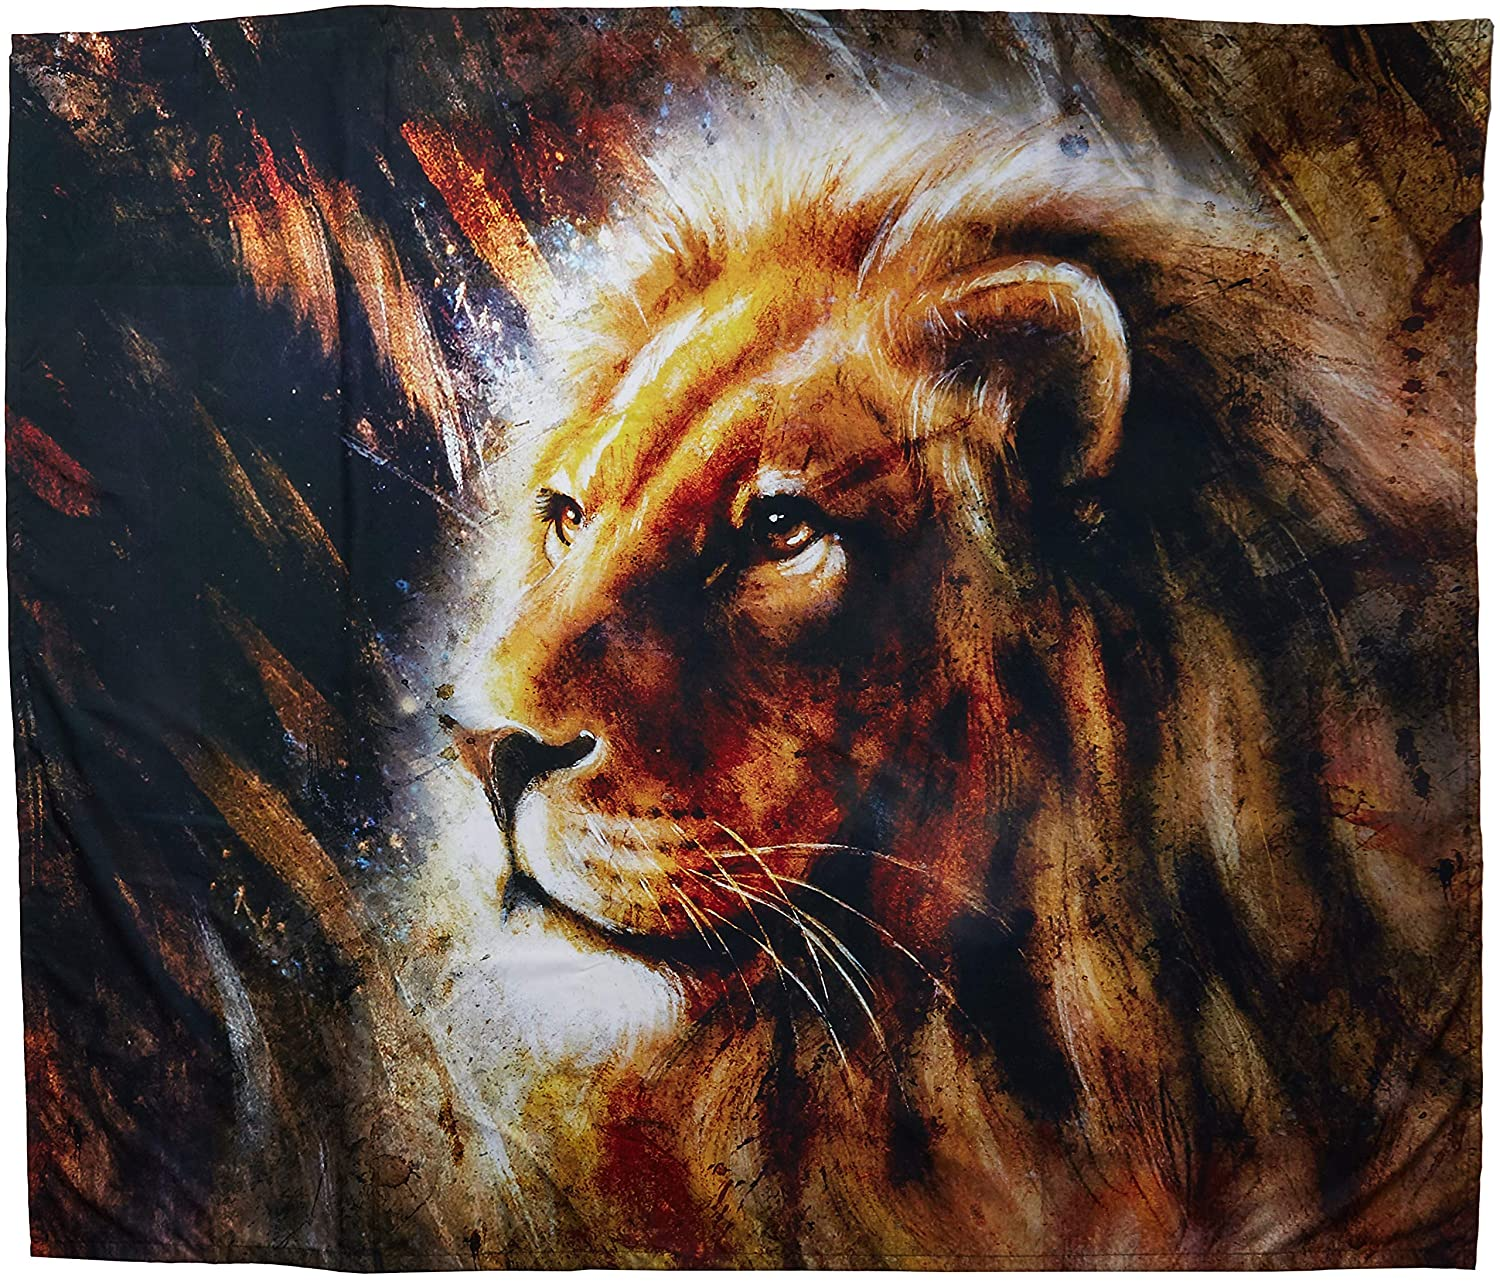 Room and Office D/écor Wall Tapestry 50 x 60 Created On Lightweight Polyester Fabric Design Art Designart TAP6039-60-50 Majestically Peaceful Lion Animal Landscape Hanging Art Decoration for Home